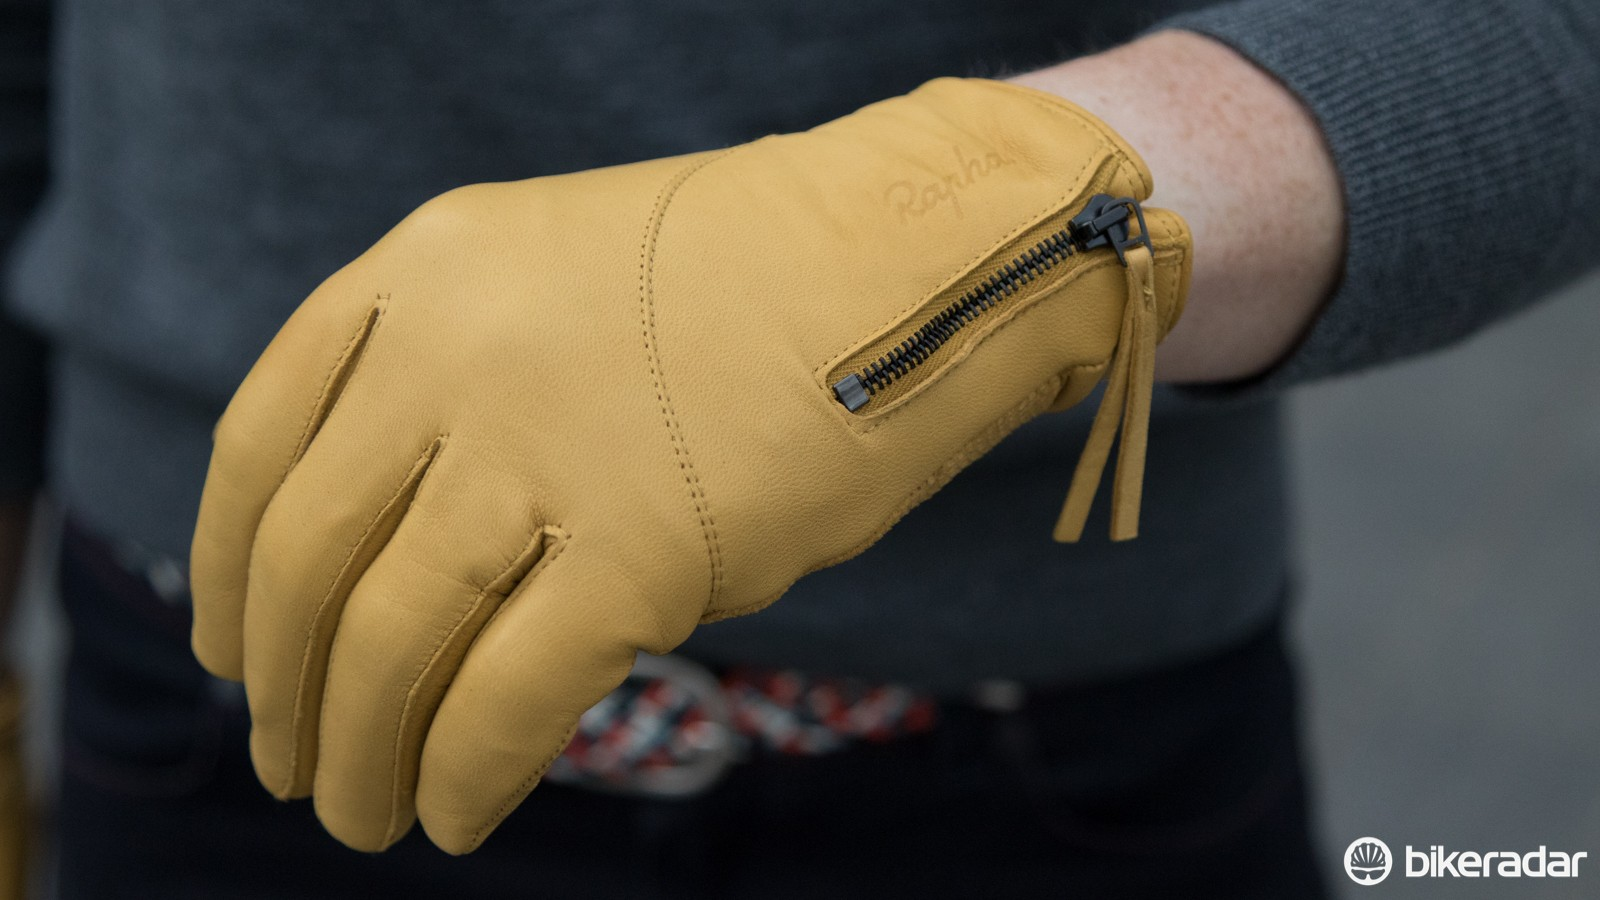 The Women's Leather Town Gloves are pure luxury (if not just expensive) at £160 / US$245 / AU$250 (yep, that's not a typo). A silk/merino inner lining wicks sweat on the inside